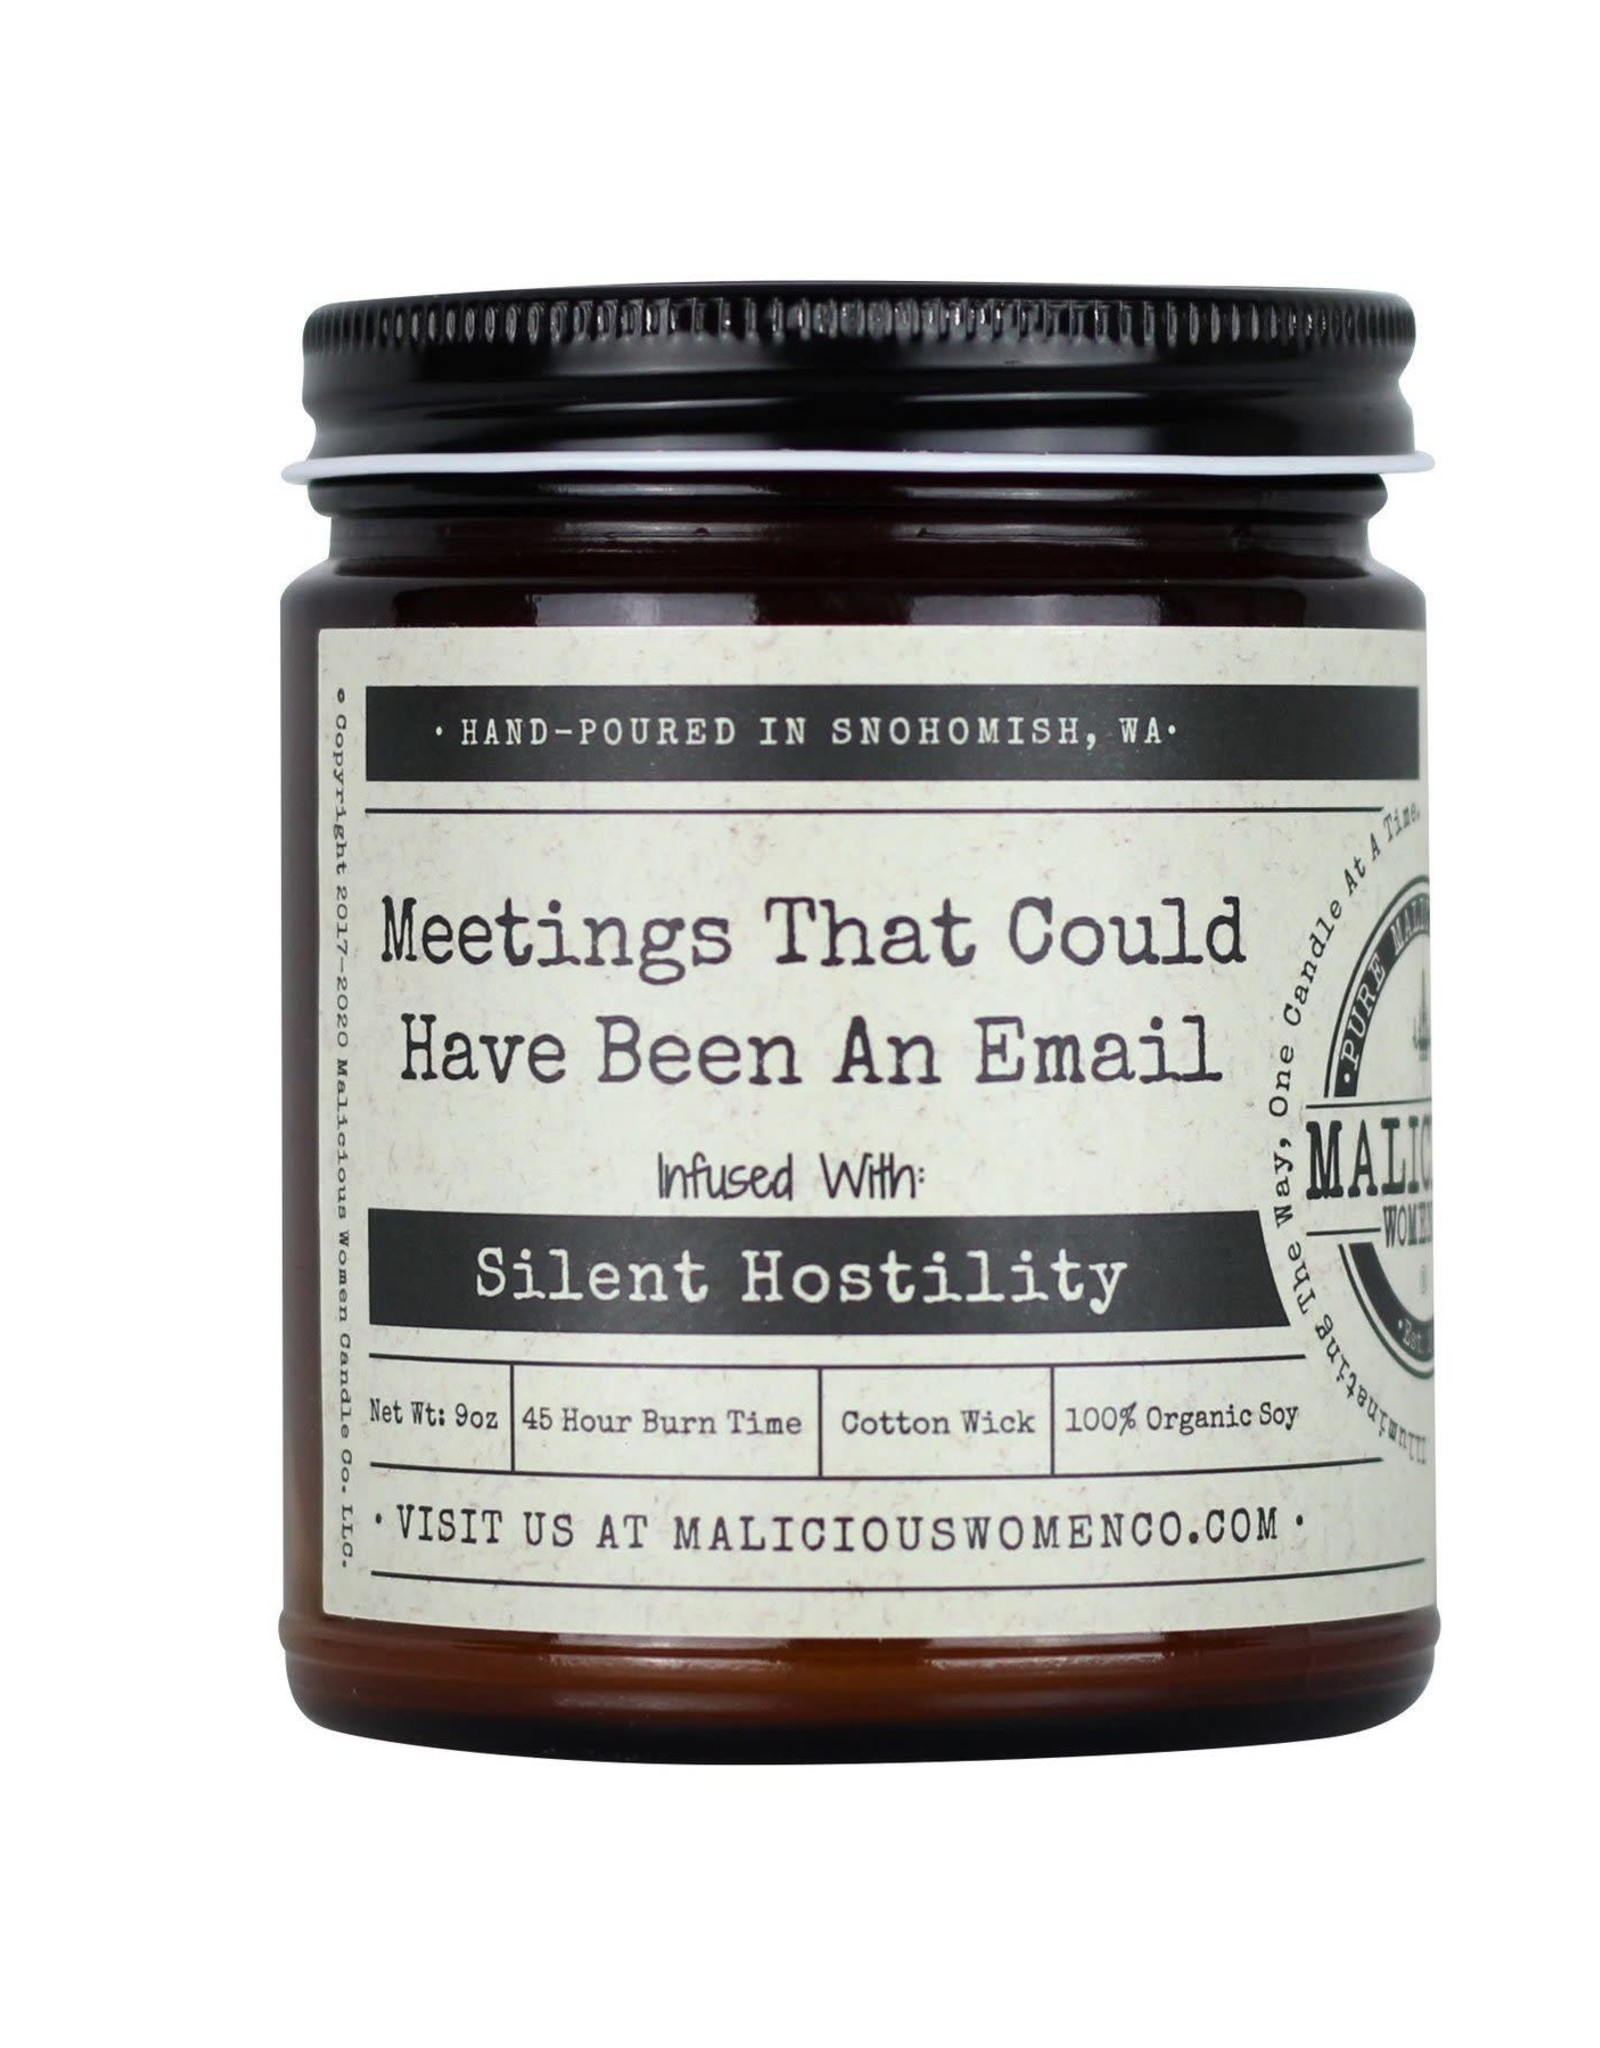 Malicious Women Candle Co. Meetings vs. Email Candle